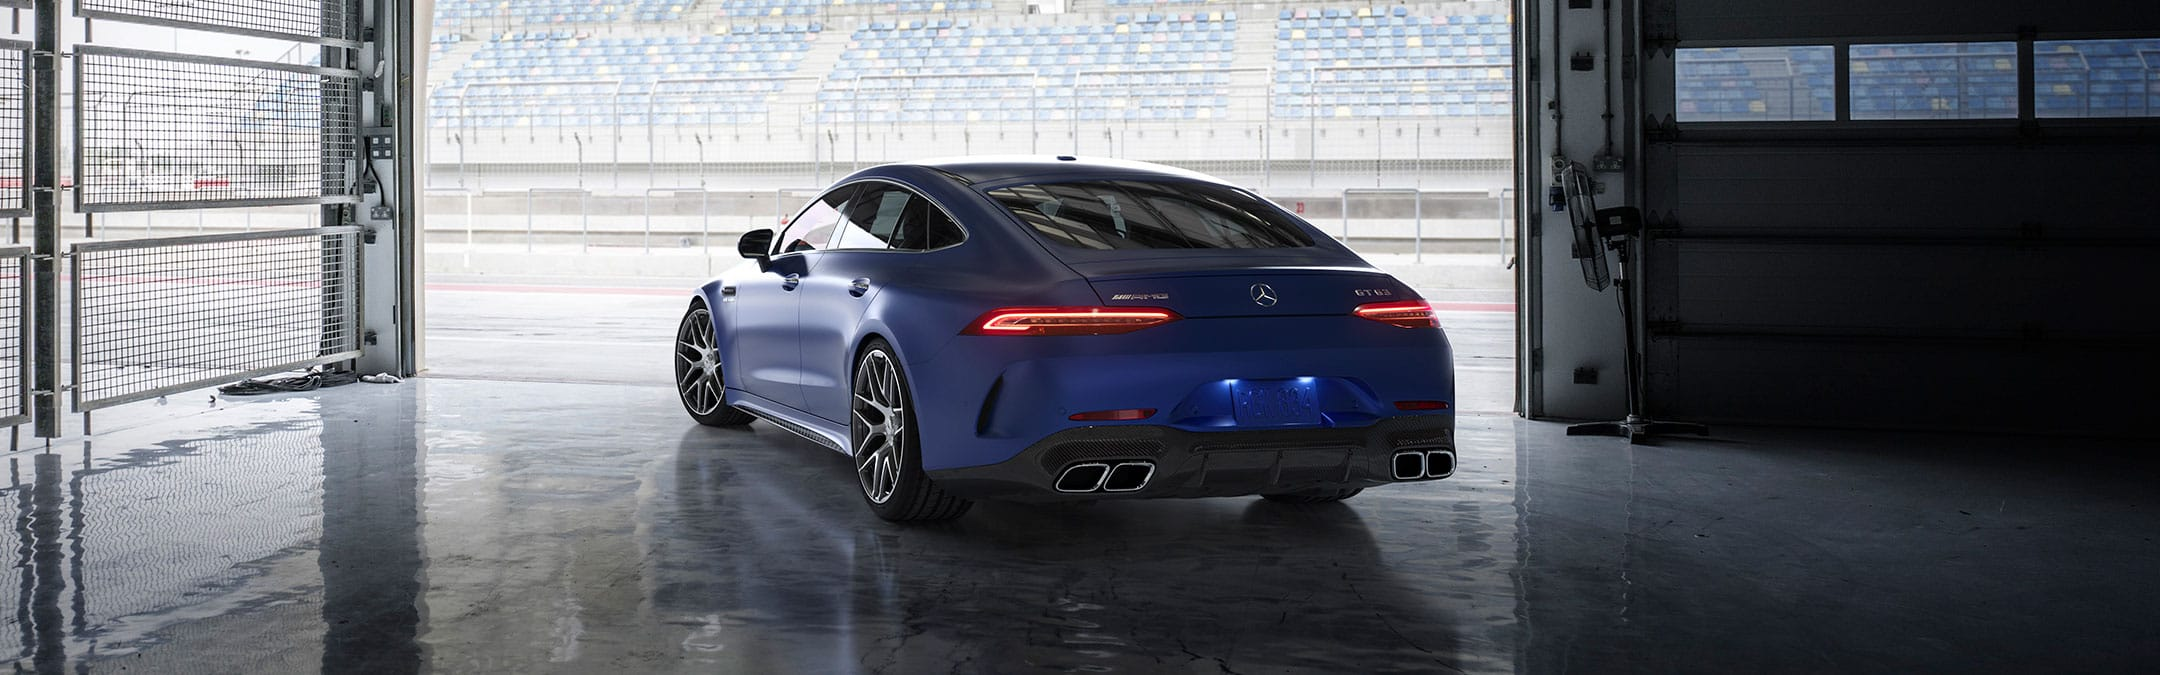 2020 AMG GT 4-Door Coupe